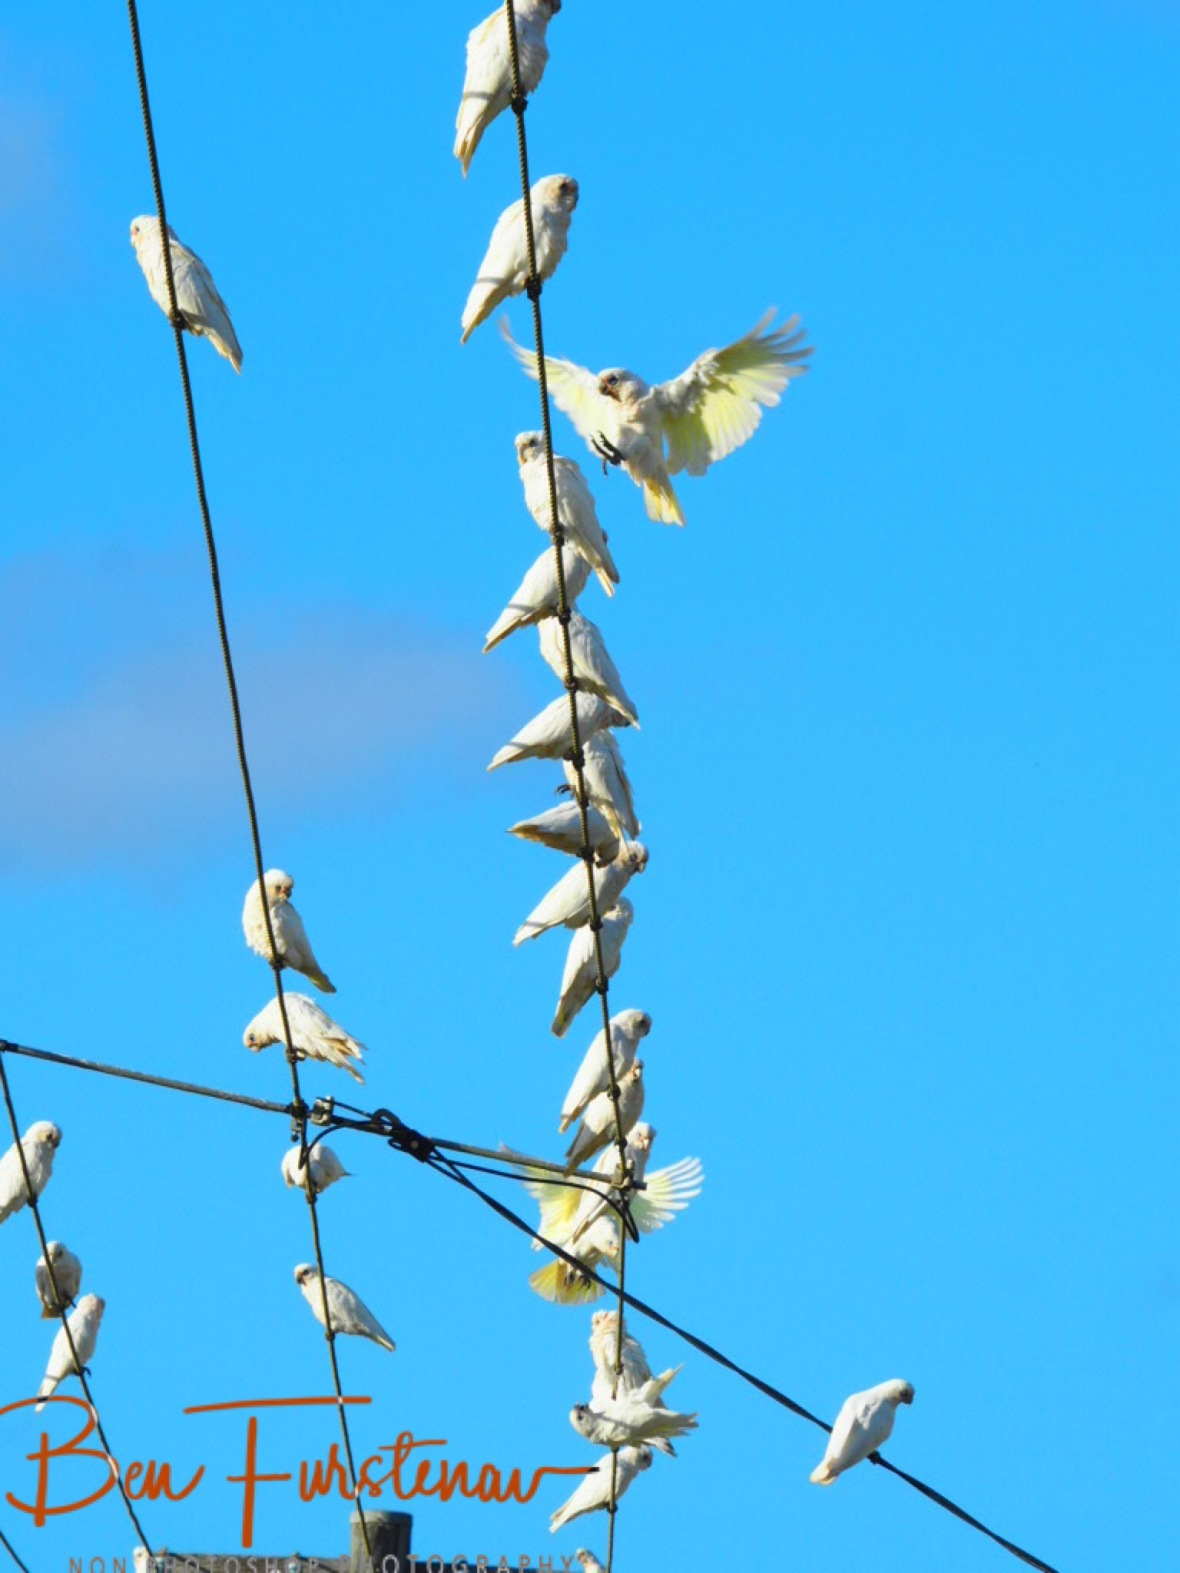 Corellas Show up in large numbers at Evans Head, Northern New South Wales, Australia